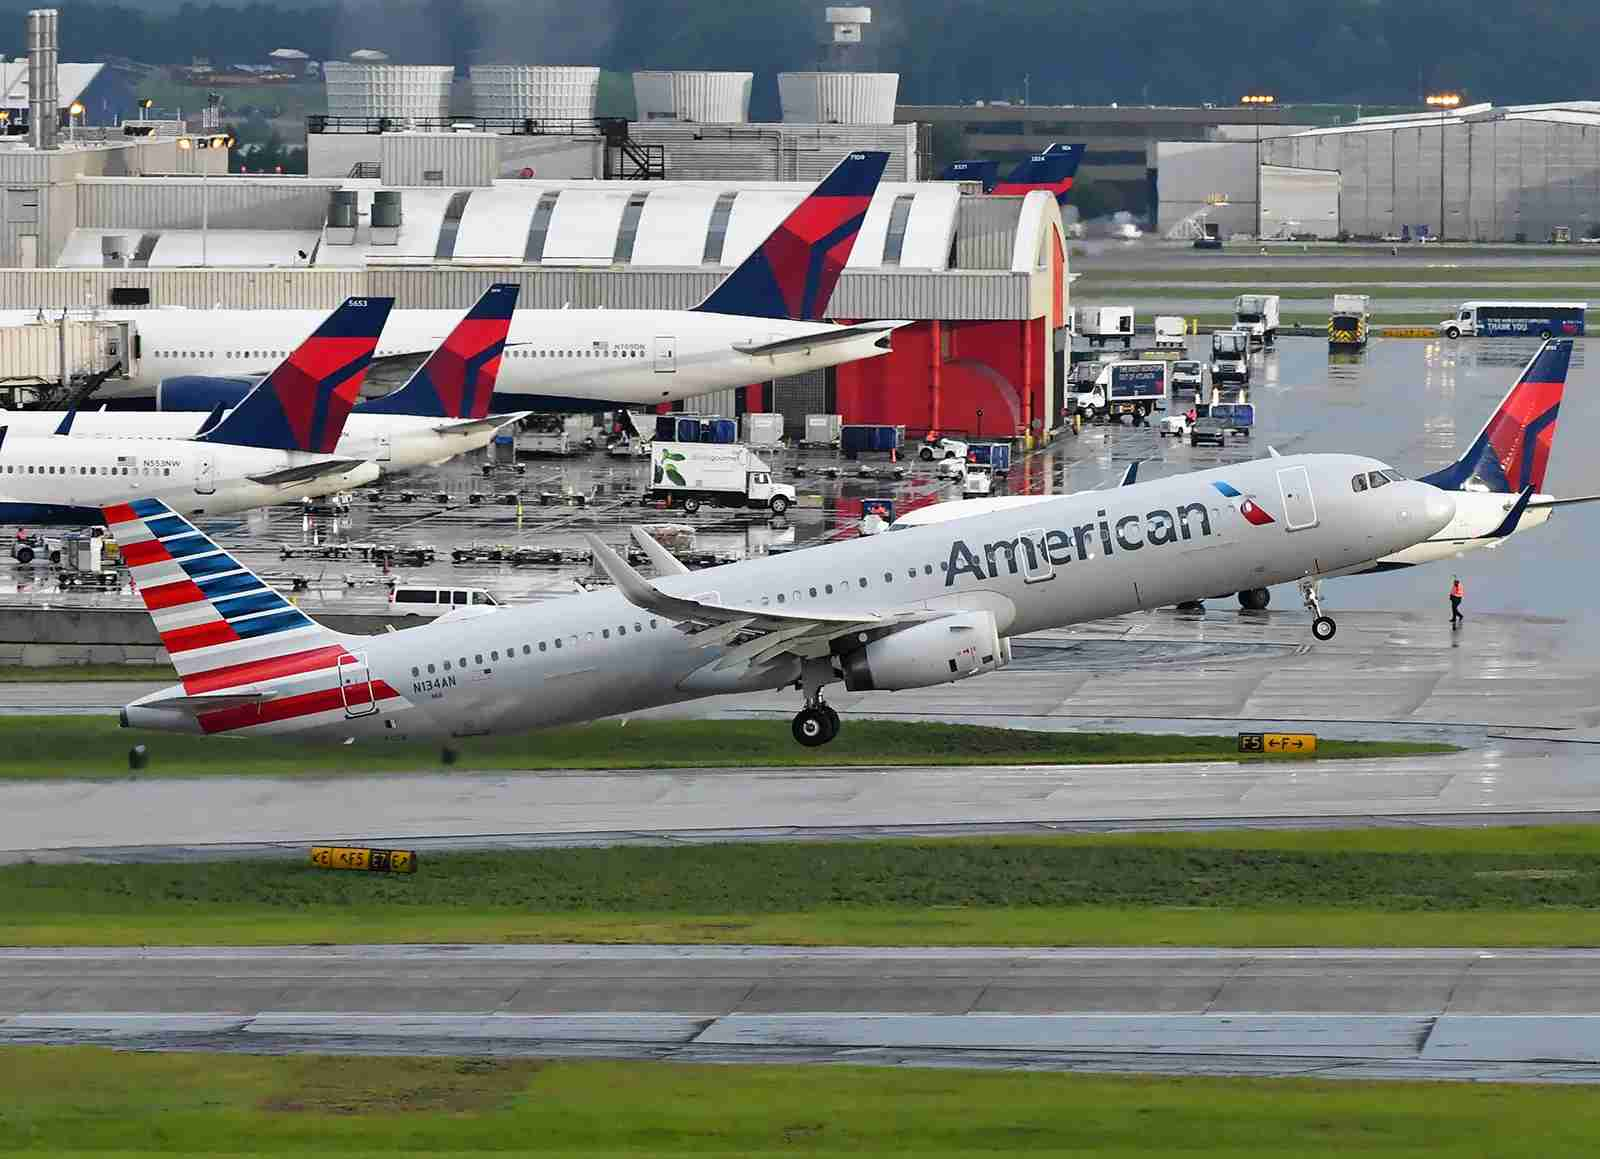 An American Airlines Airbus A321 and Delta aircraft at the Atlanta airport (Photo by Alberto Riva/TPG)